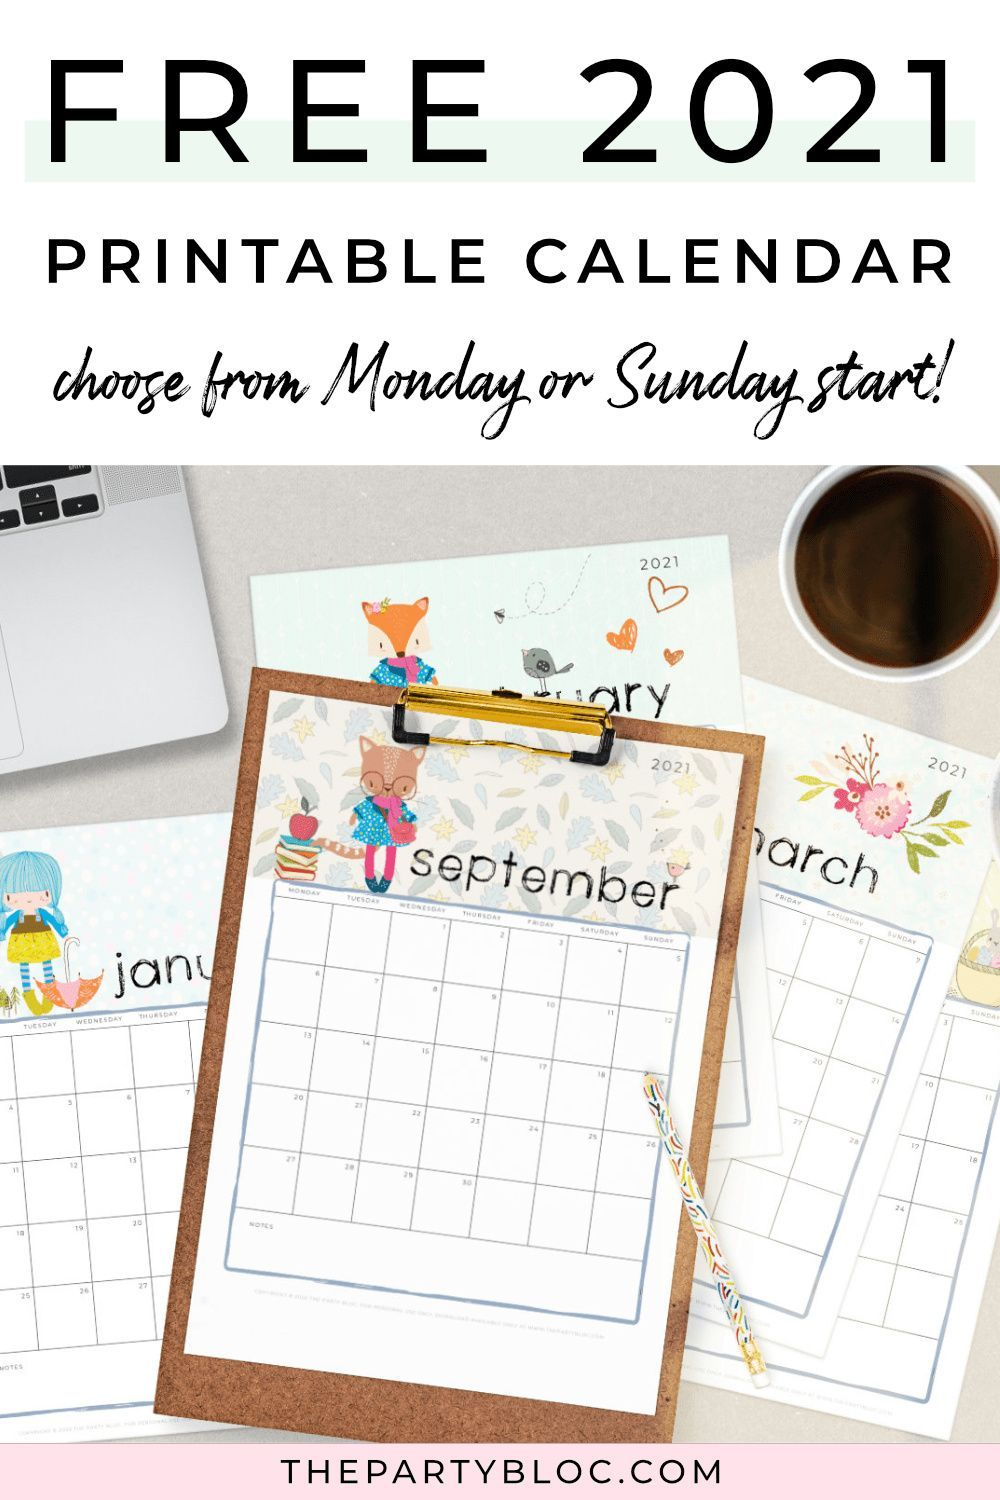 Your FREE 2021 Printable Monthly Calendar The Party Bloc